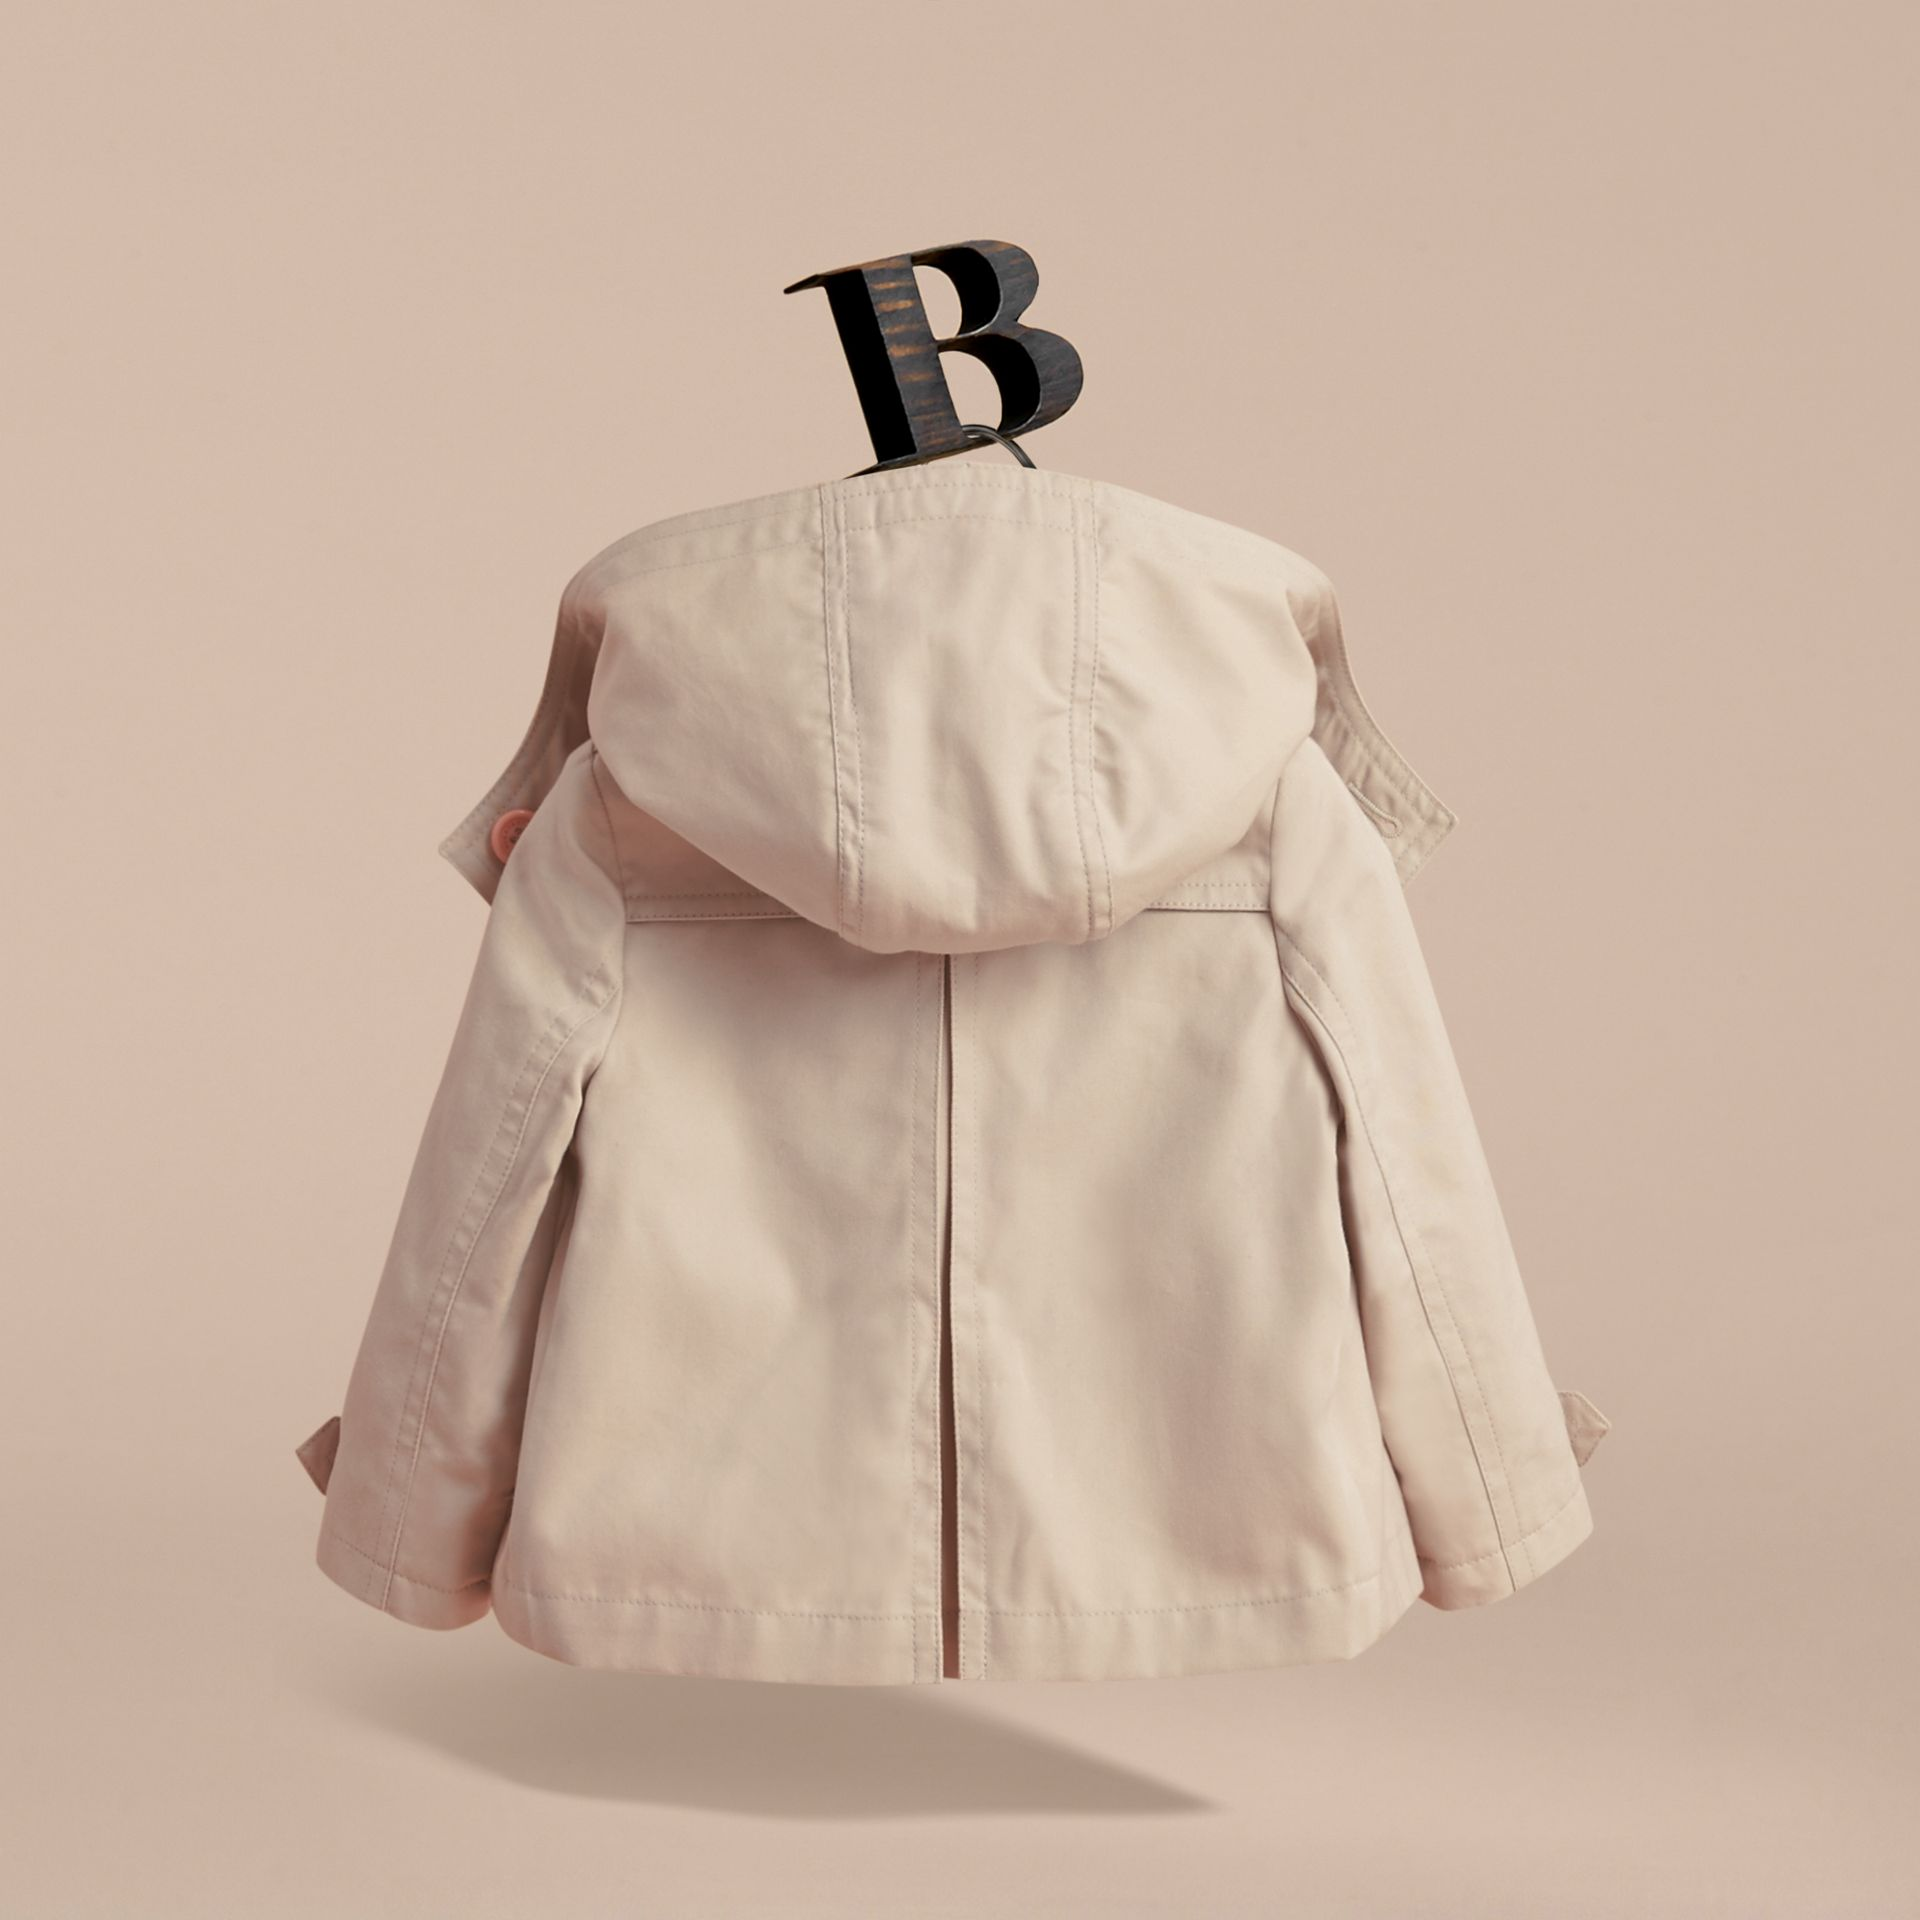 Resin Button Cotton A-line Jacket  with Detachable Hood in Stone | Burberry - gallery image 4